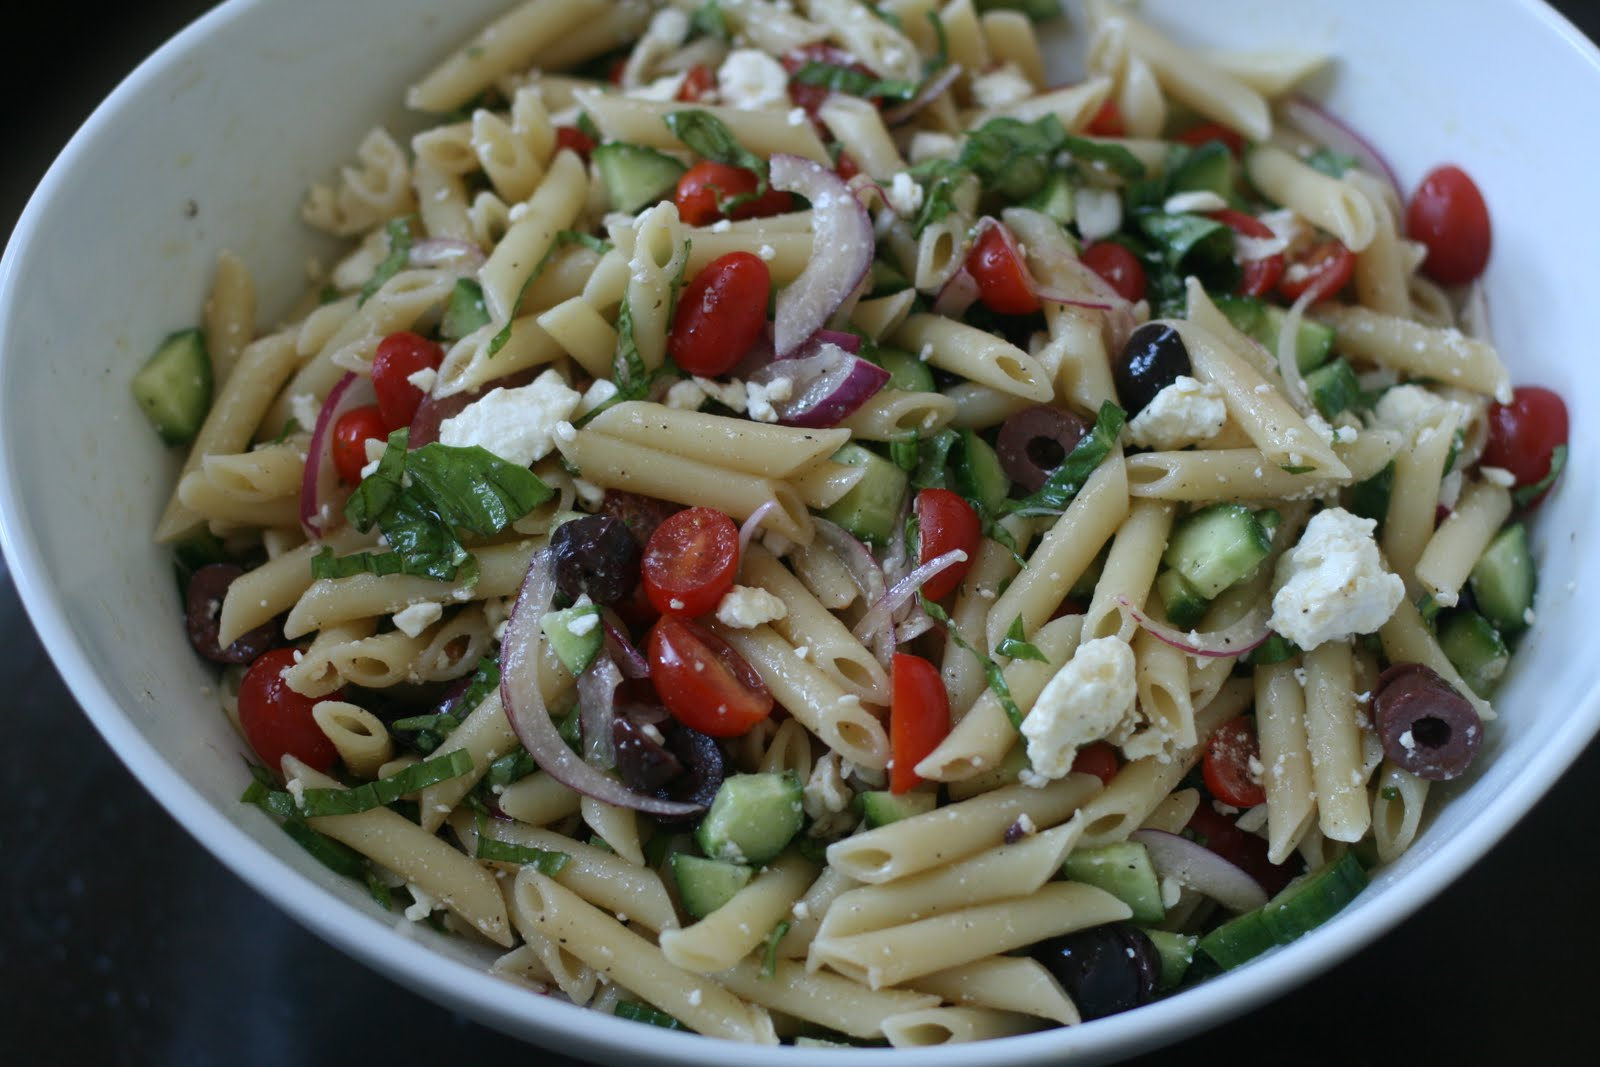 Week of Menus: Greek Pasta Salad: Questioning choices